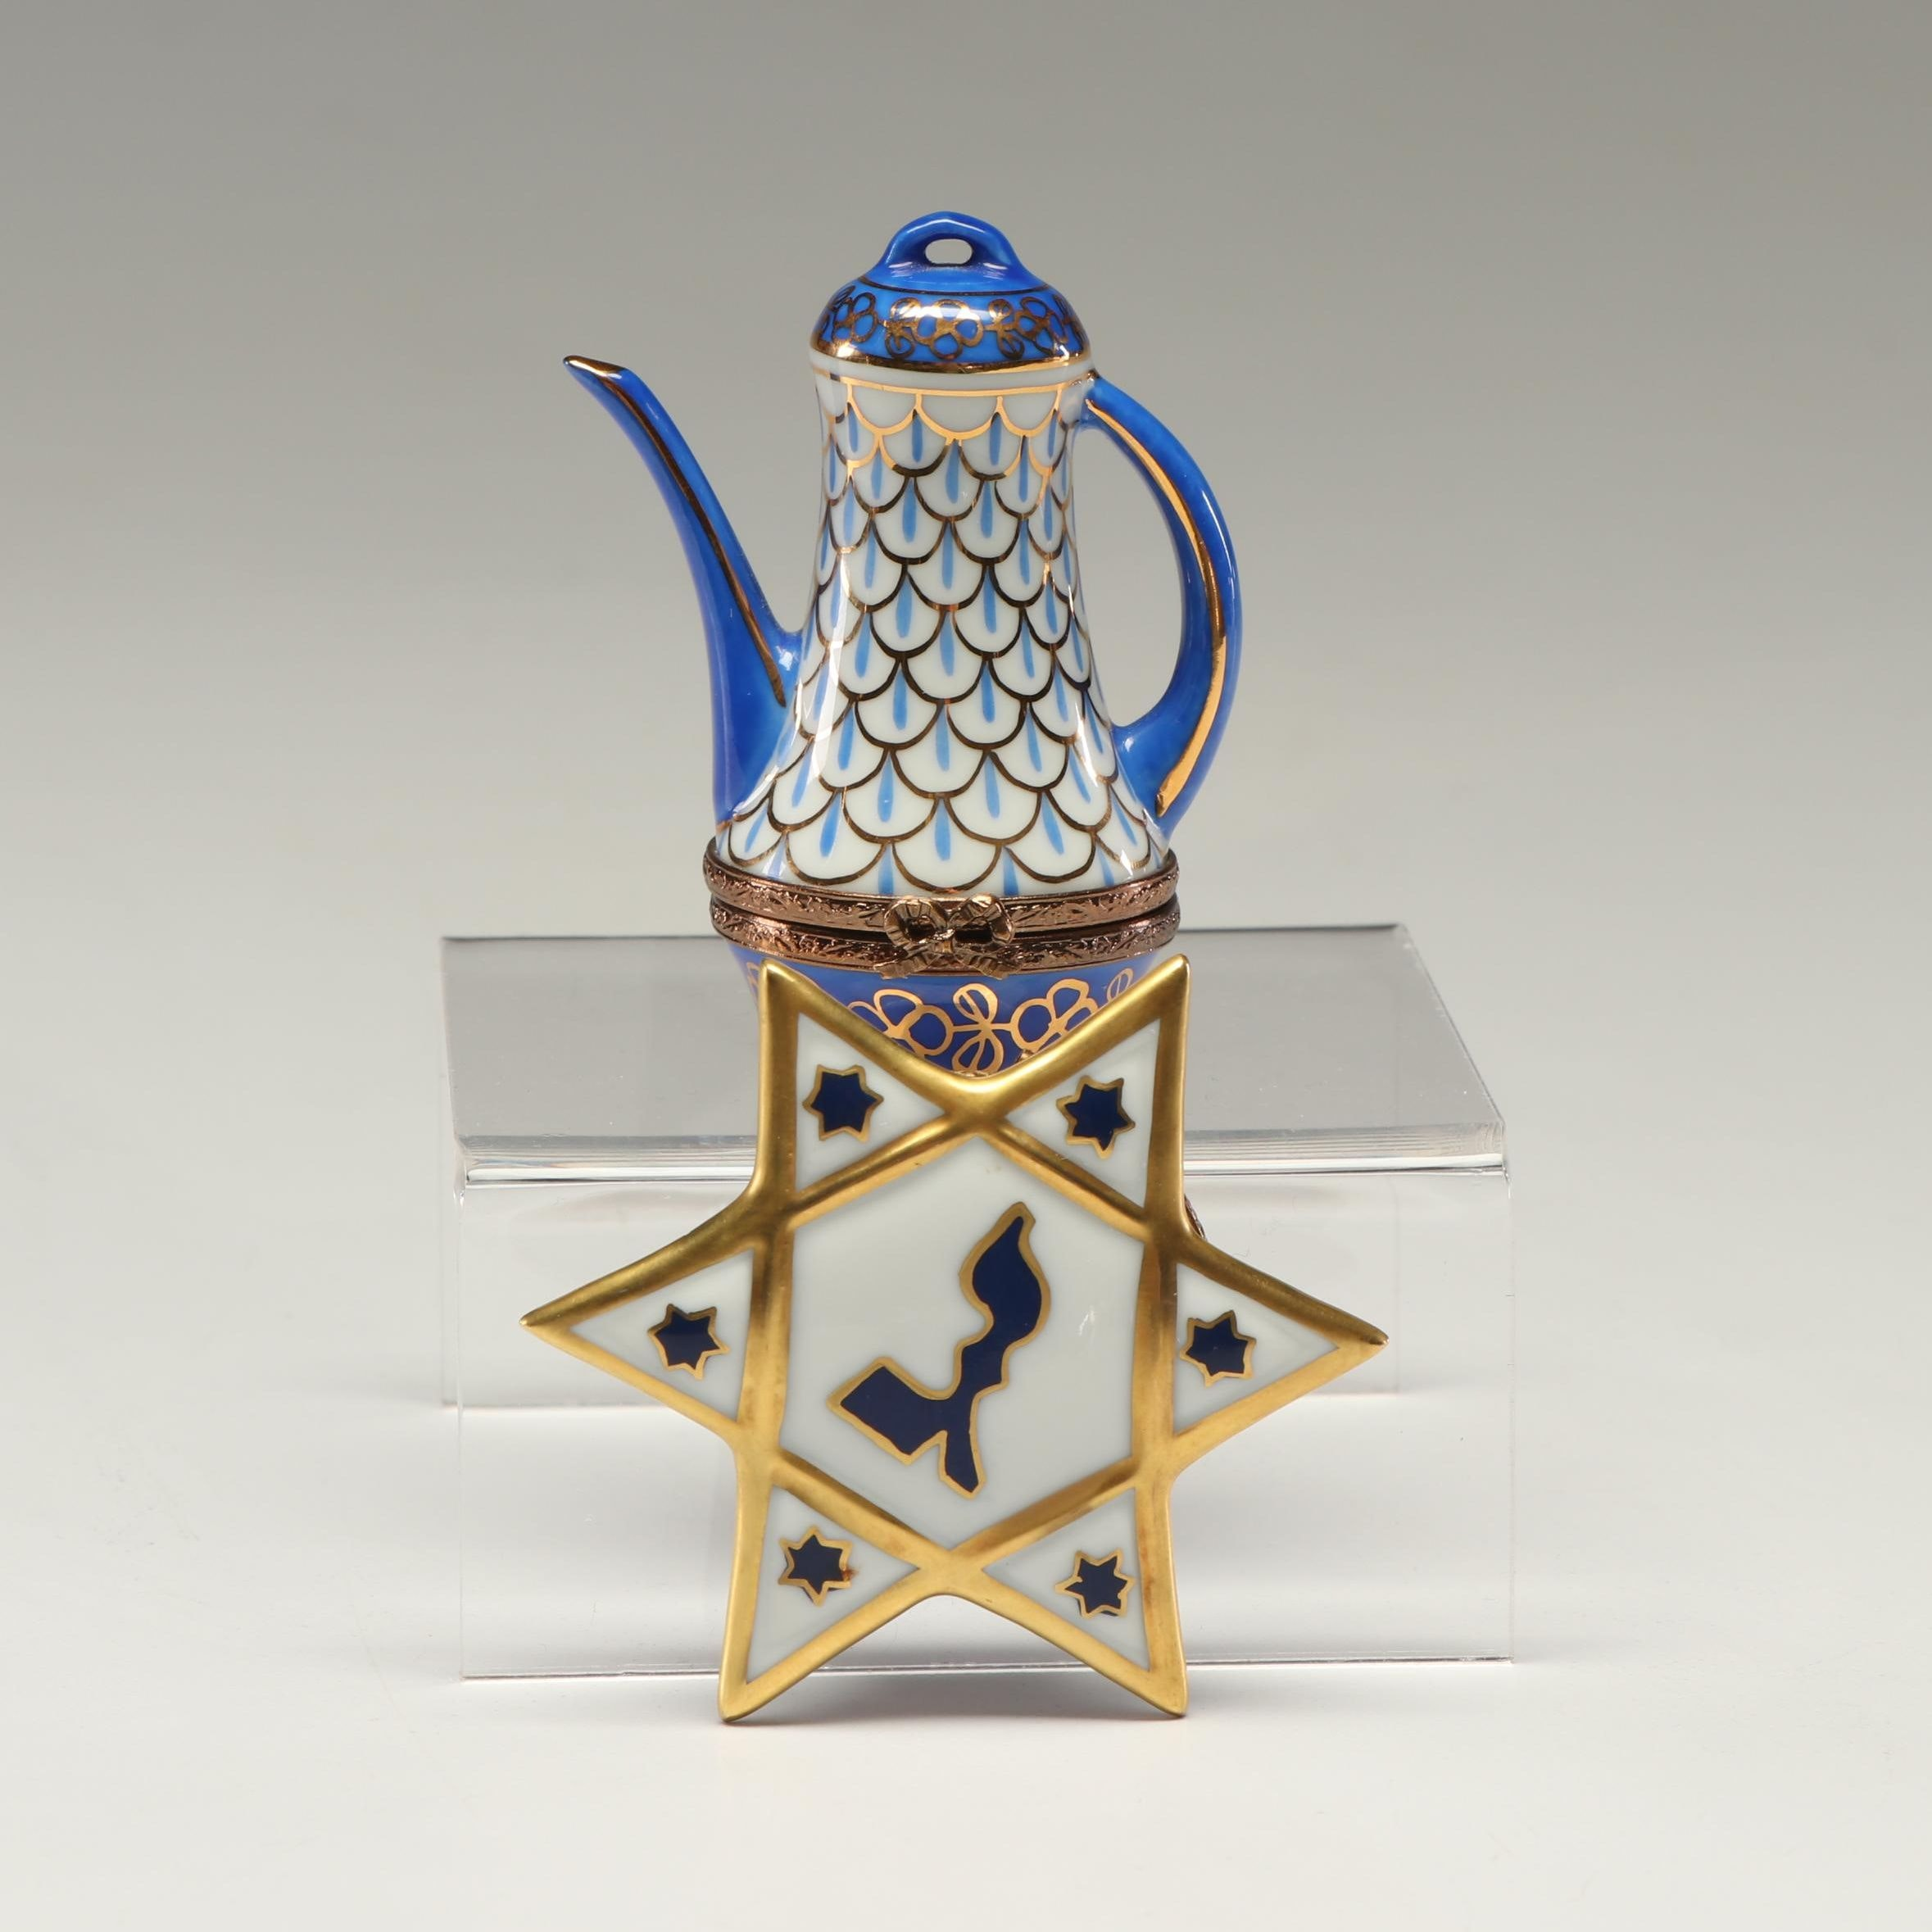 Limoges Painted Porcelain Pitcher and Star of David Trinket Boxes